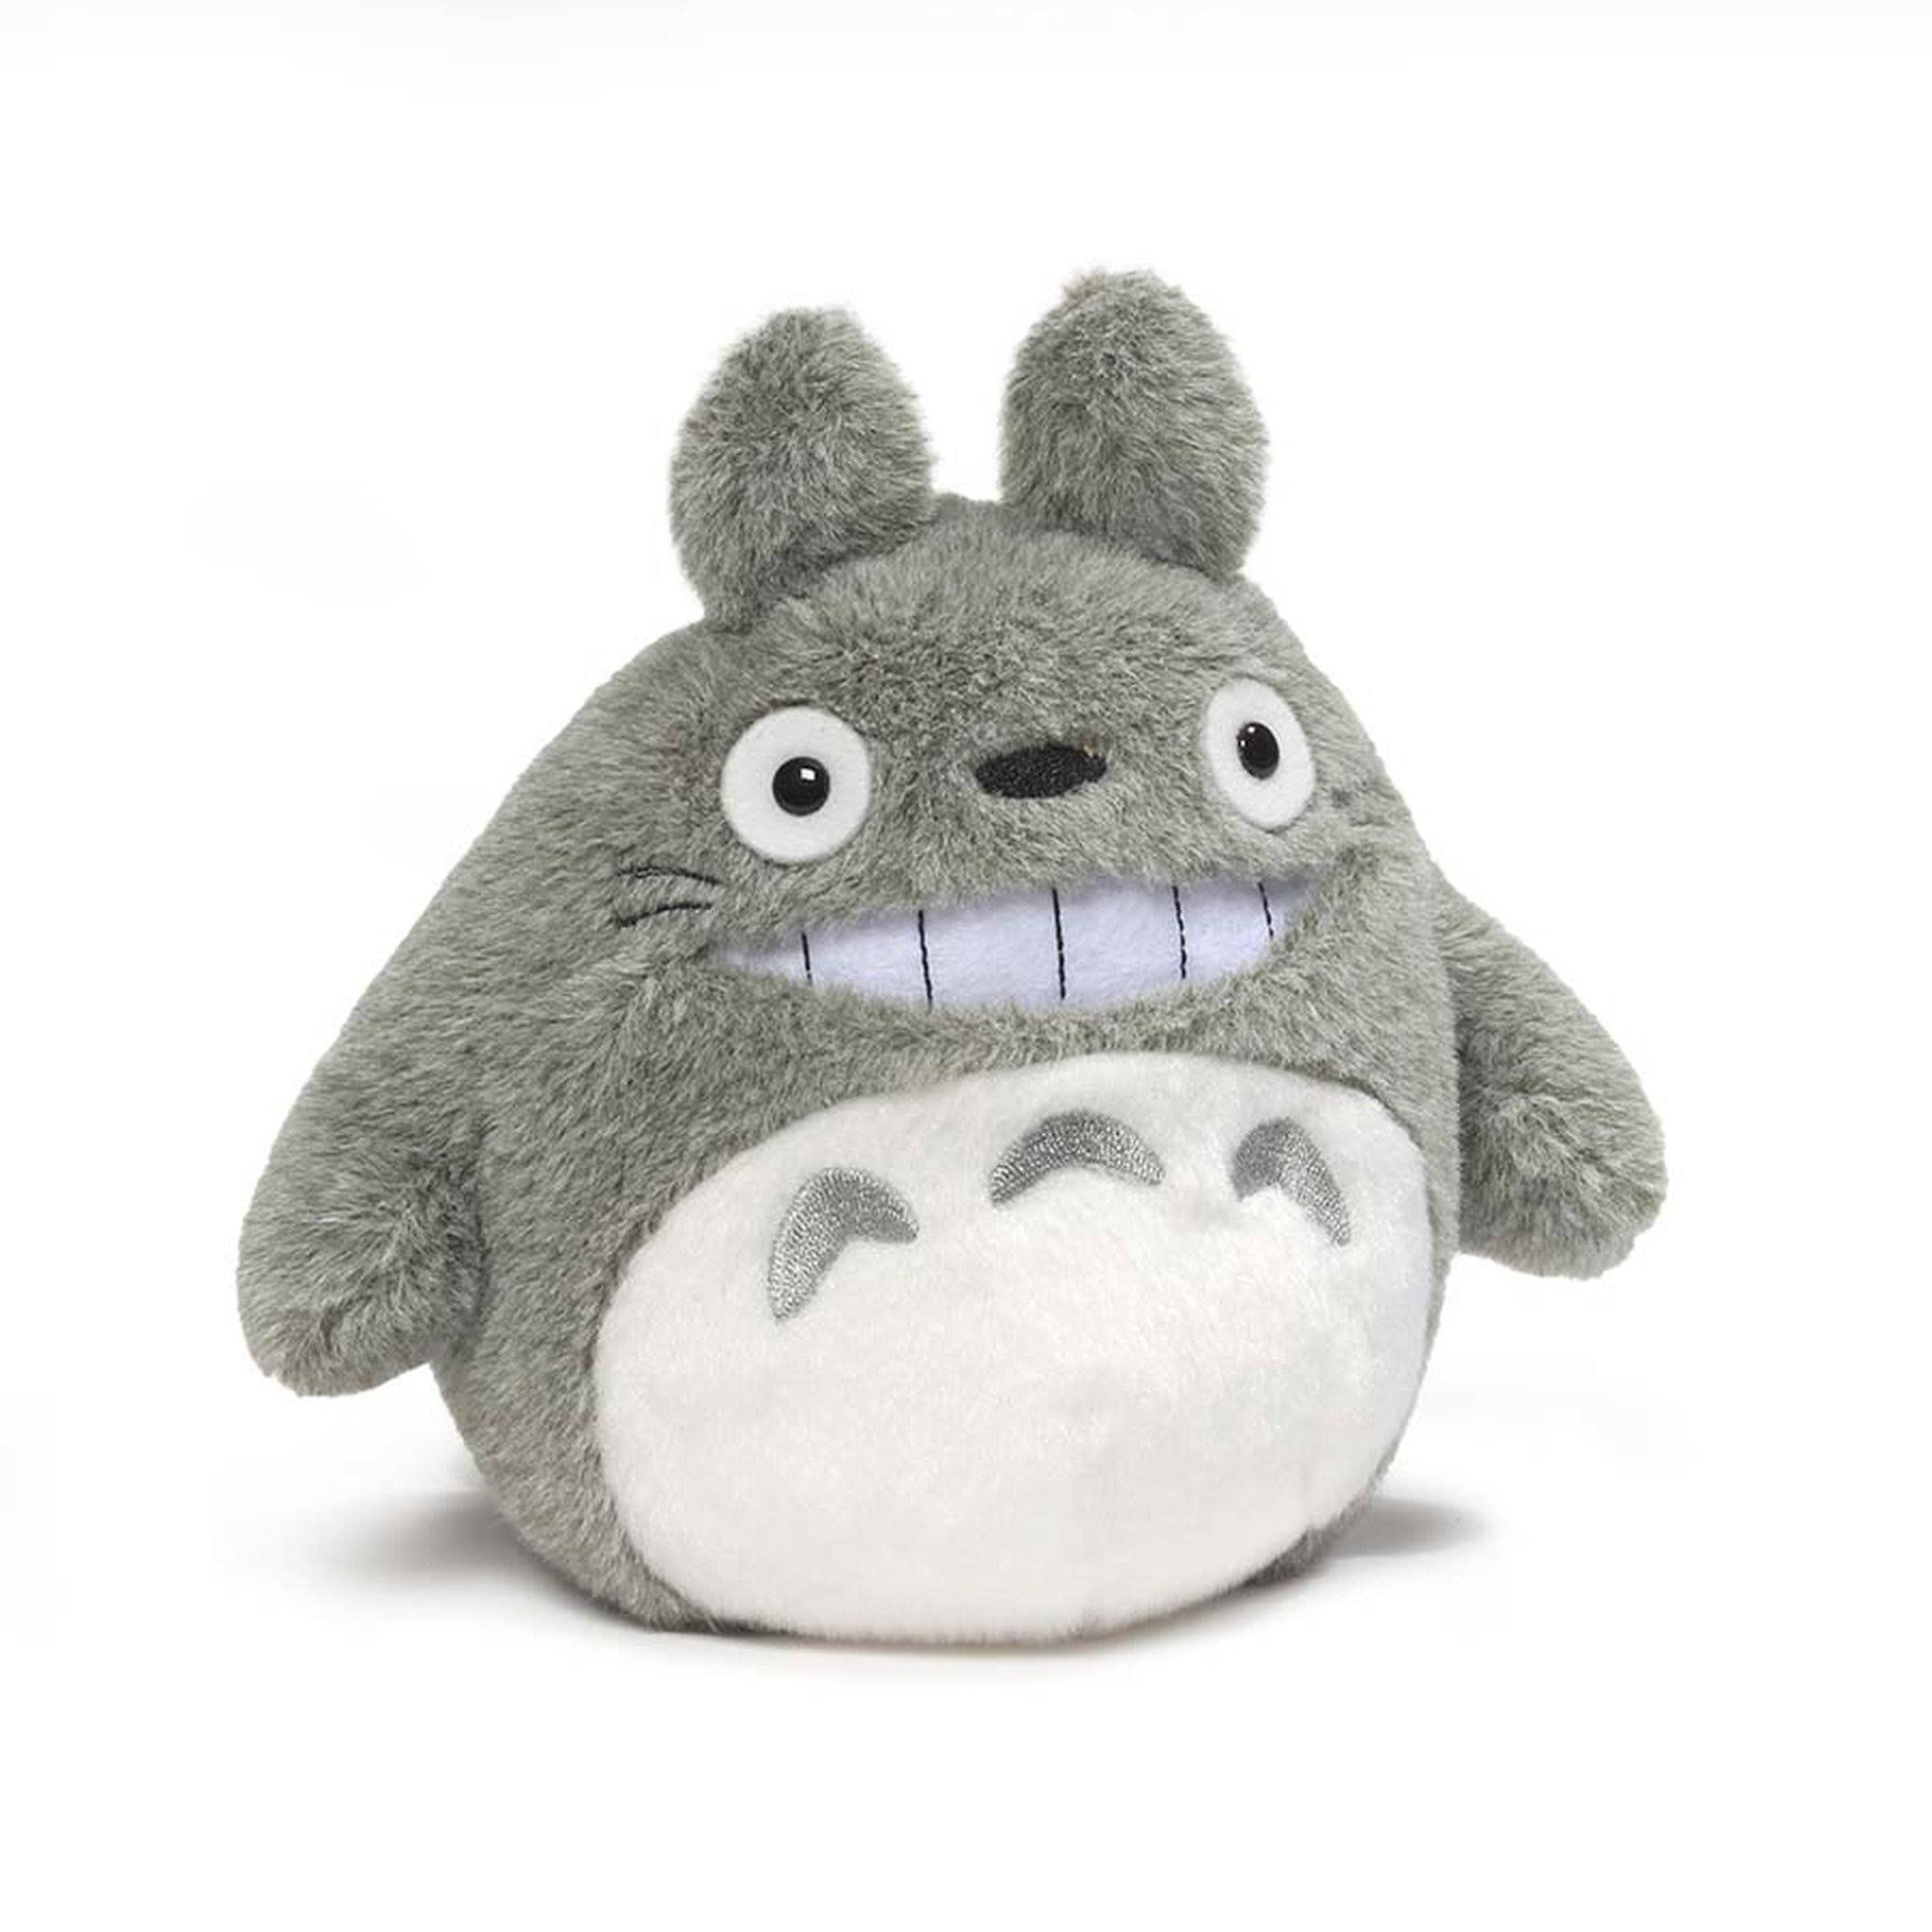 Studio Ghibli Totoro Smiling Plush Toy - 5.5""